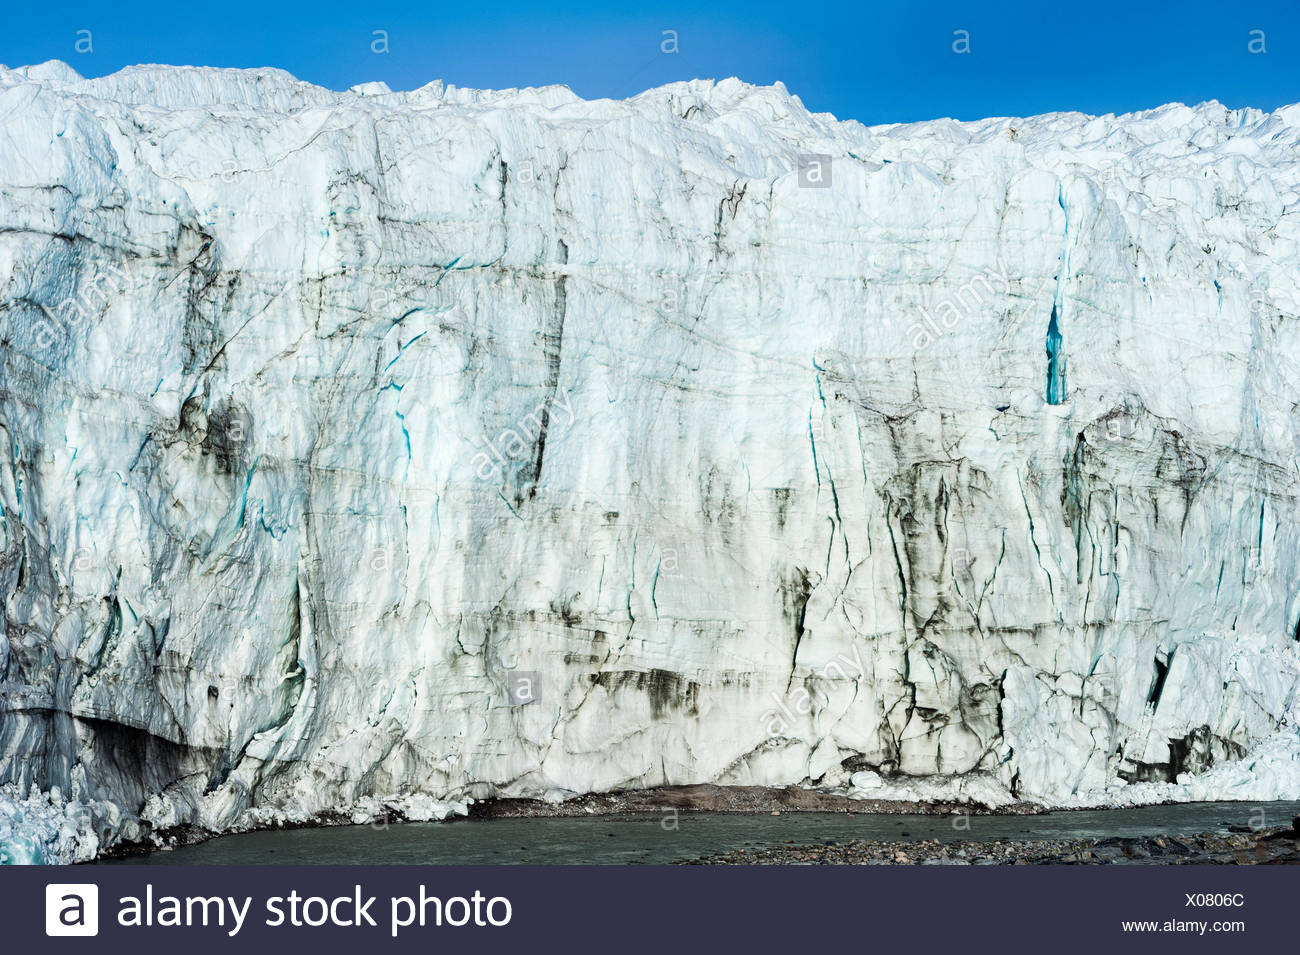 The sheer ice cliff of a glacier fracture zone. - Stock Image